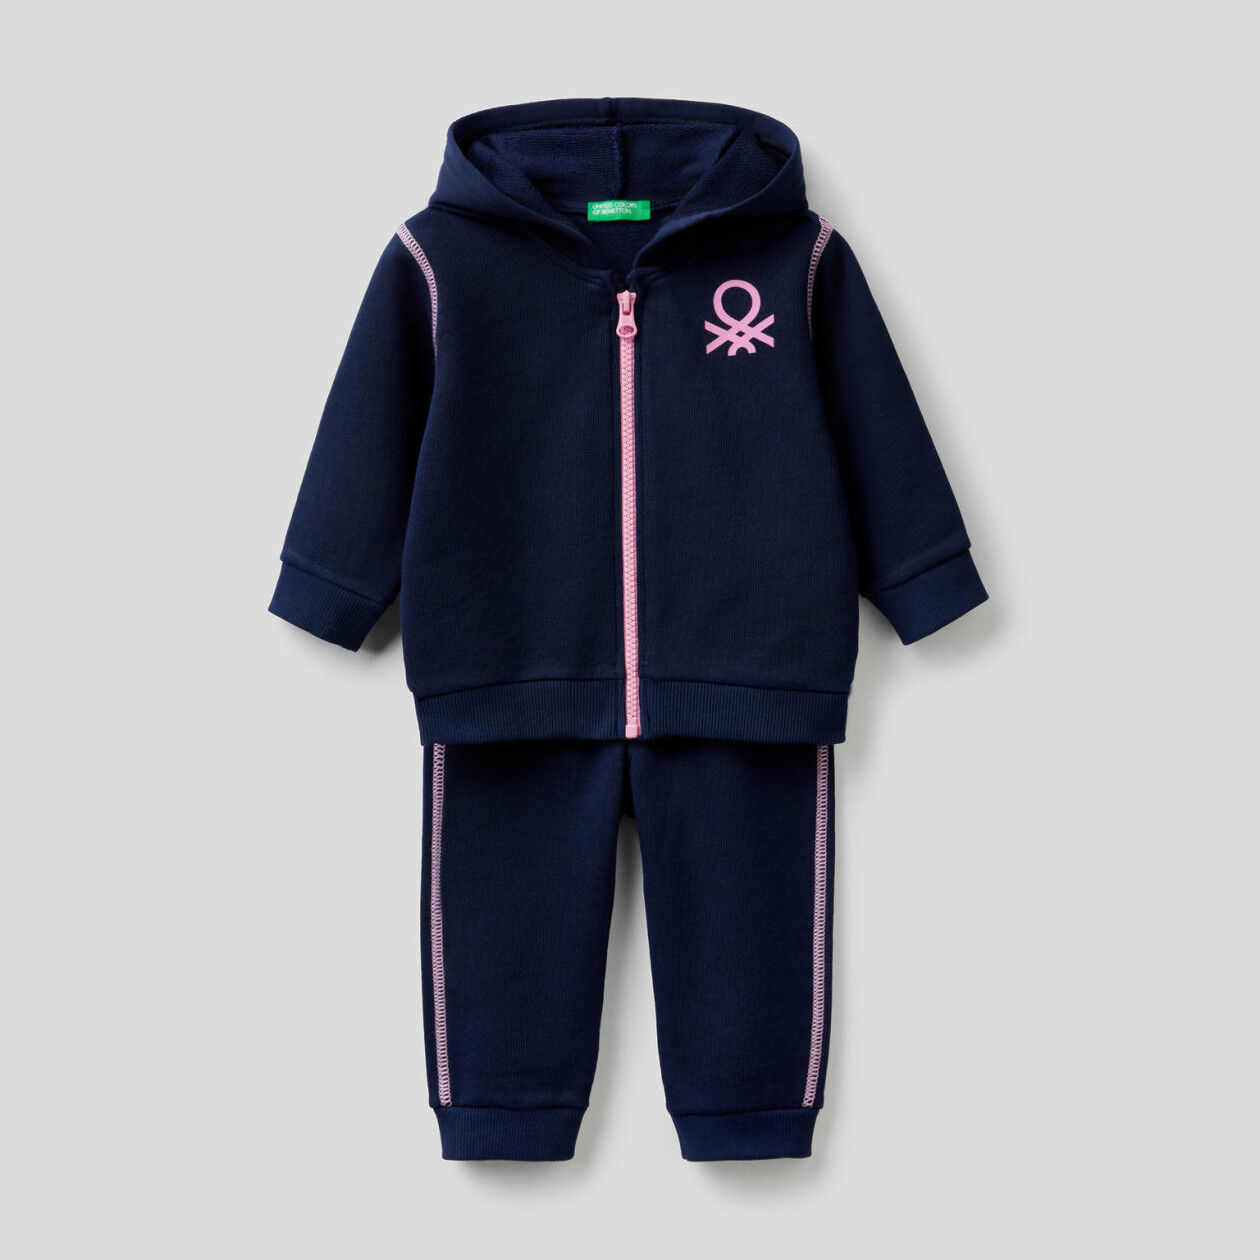 Sweat tracksuit in organic cotton